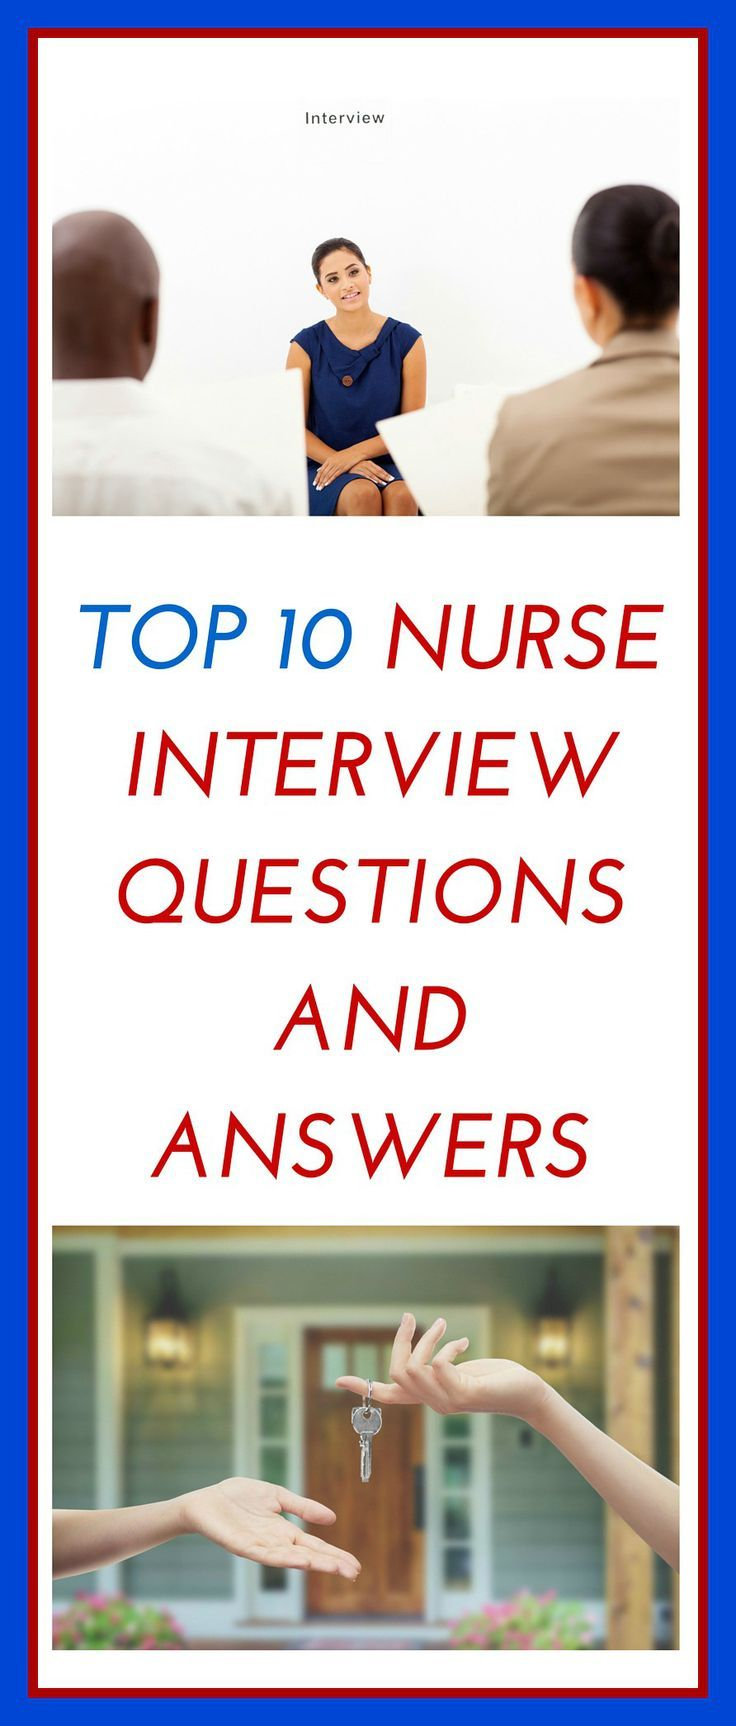 Pacu Nurse Resume Of top Nurse Interview Questions and Answers Nursecode